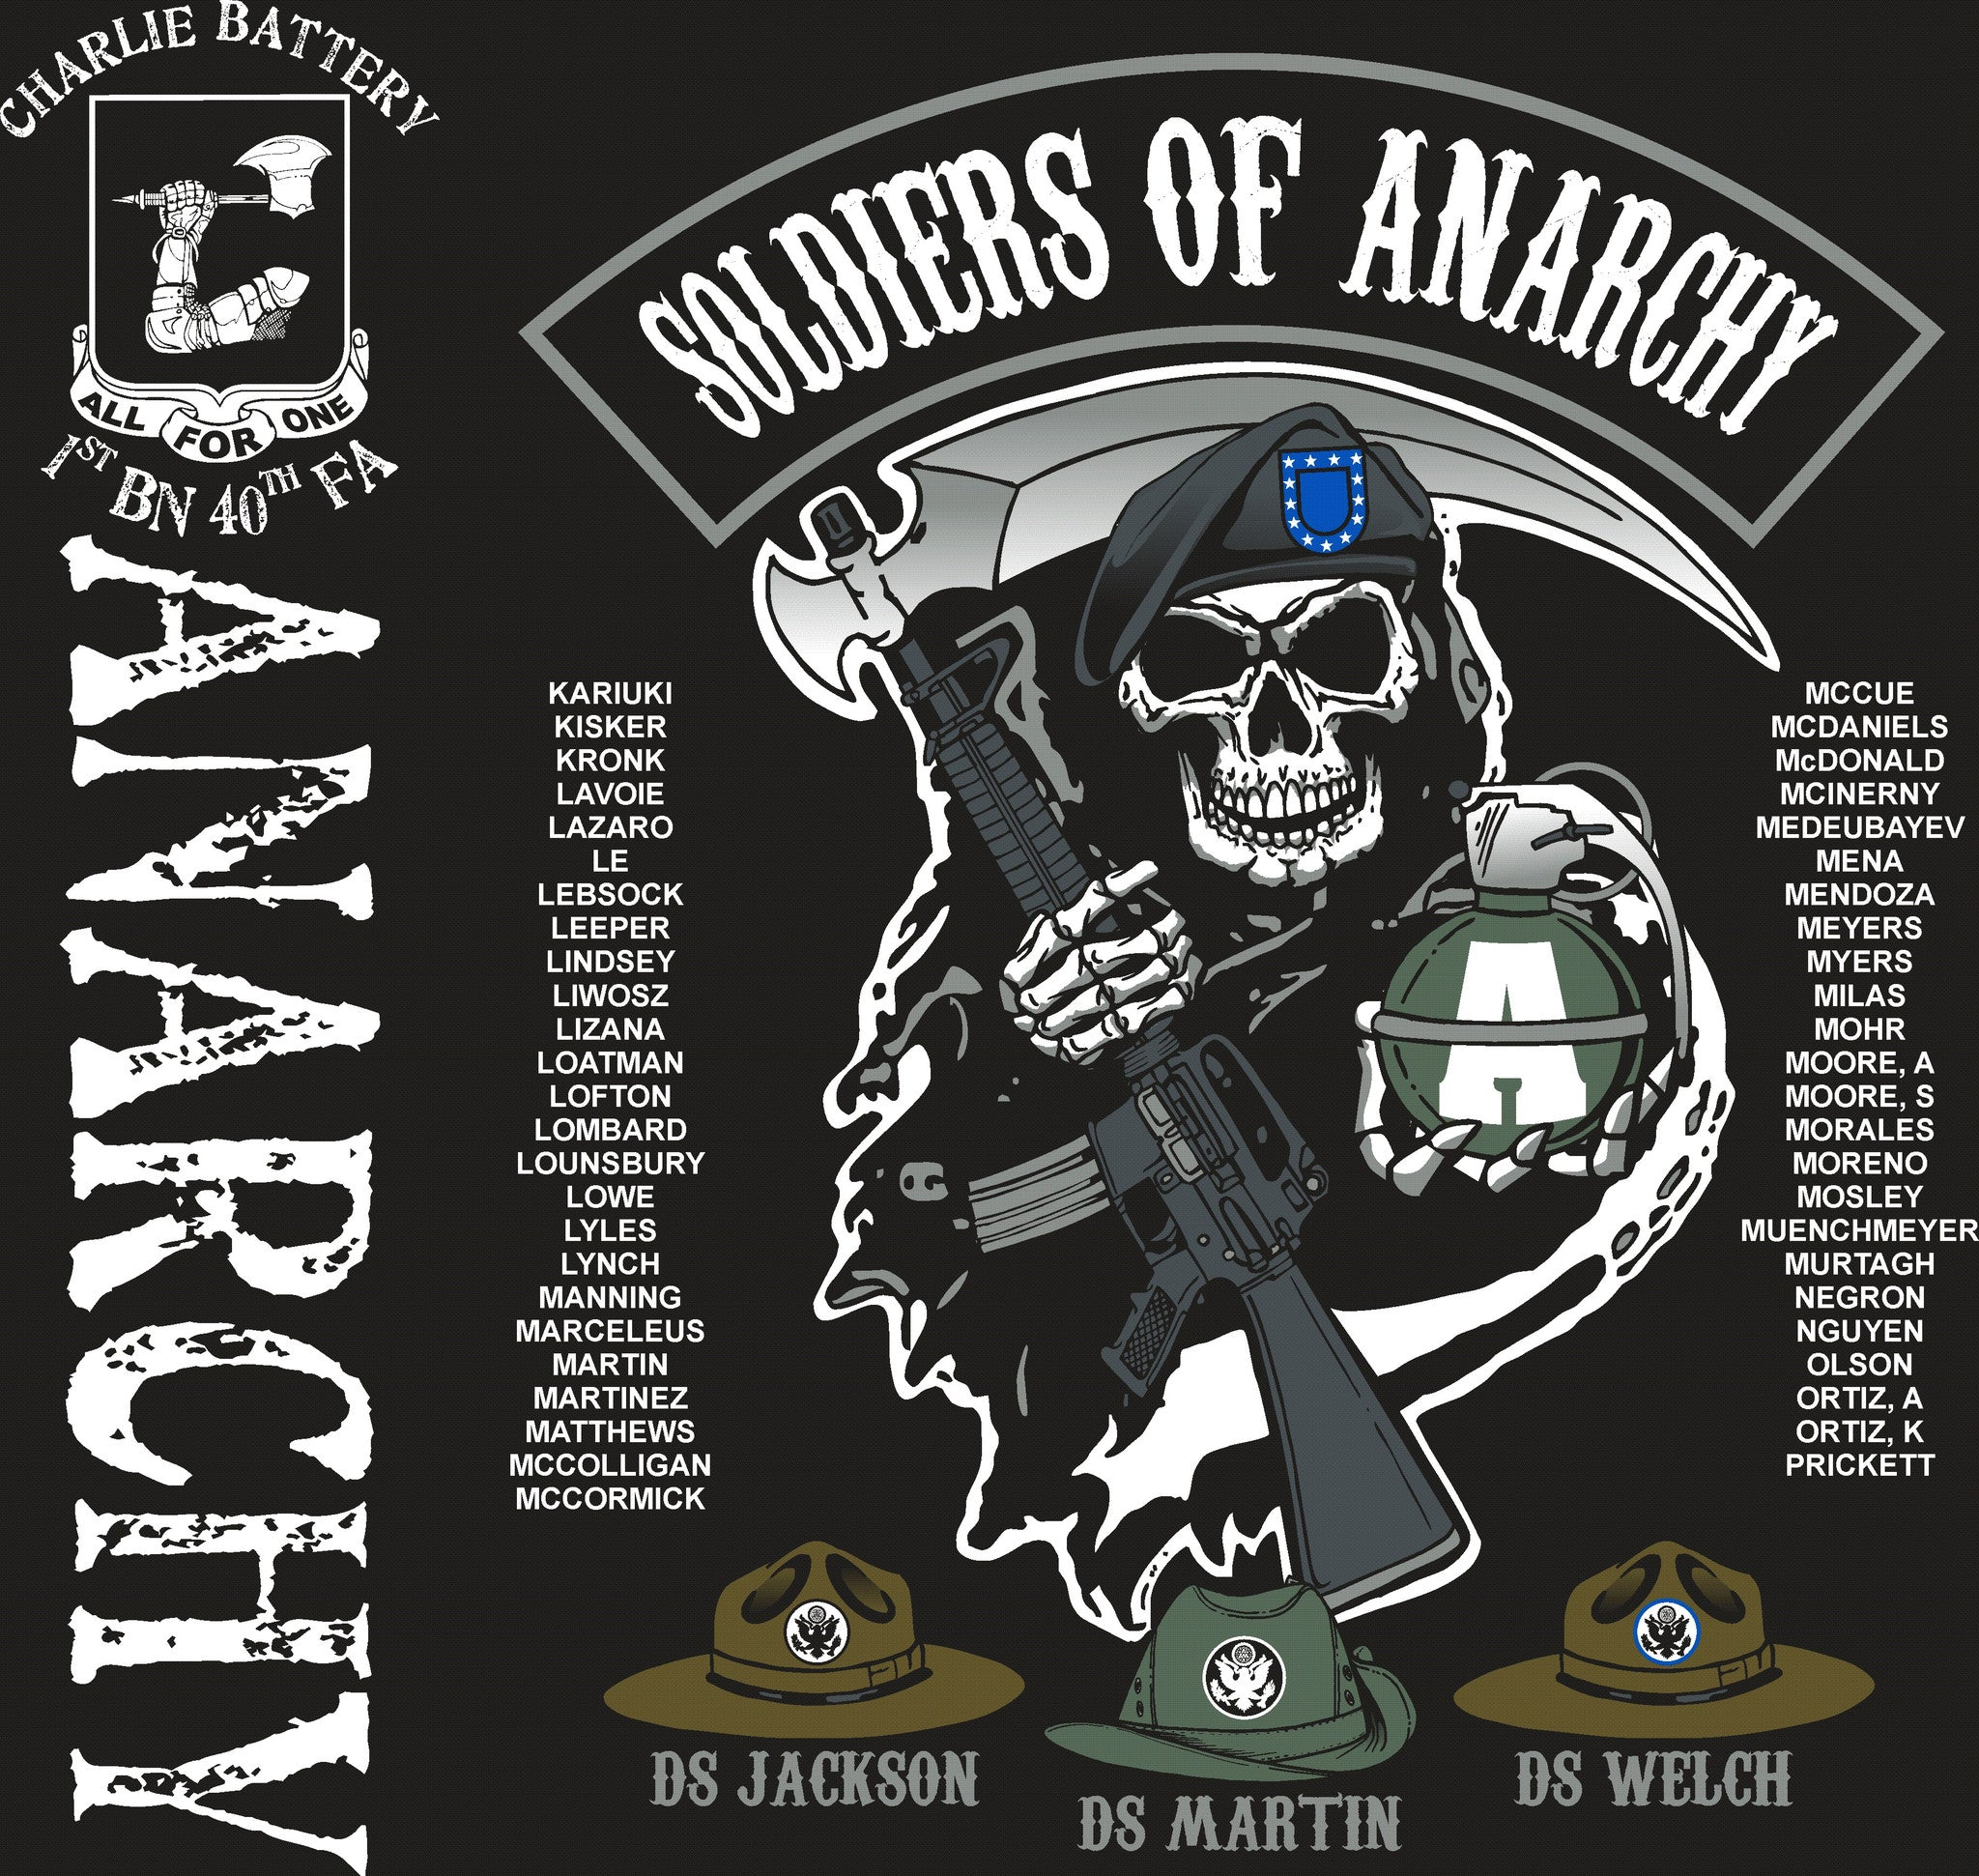 Platoon Shirts CHARLIE 1st 40th ANARCHY OCT 2015